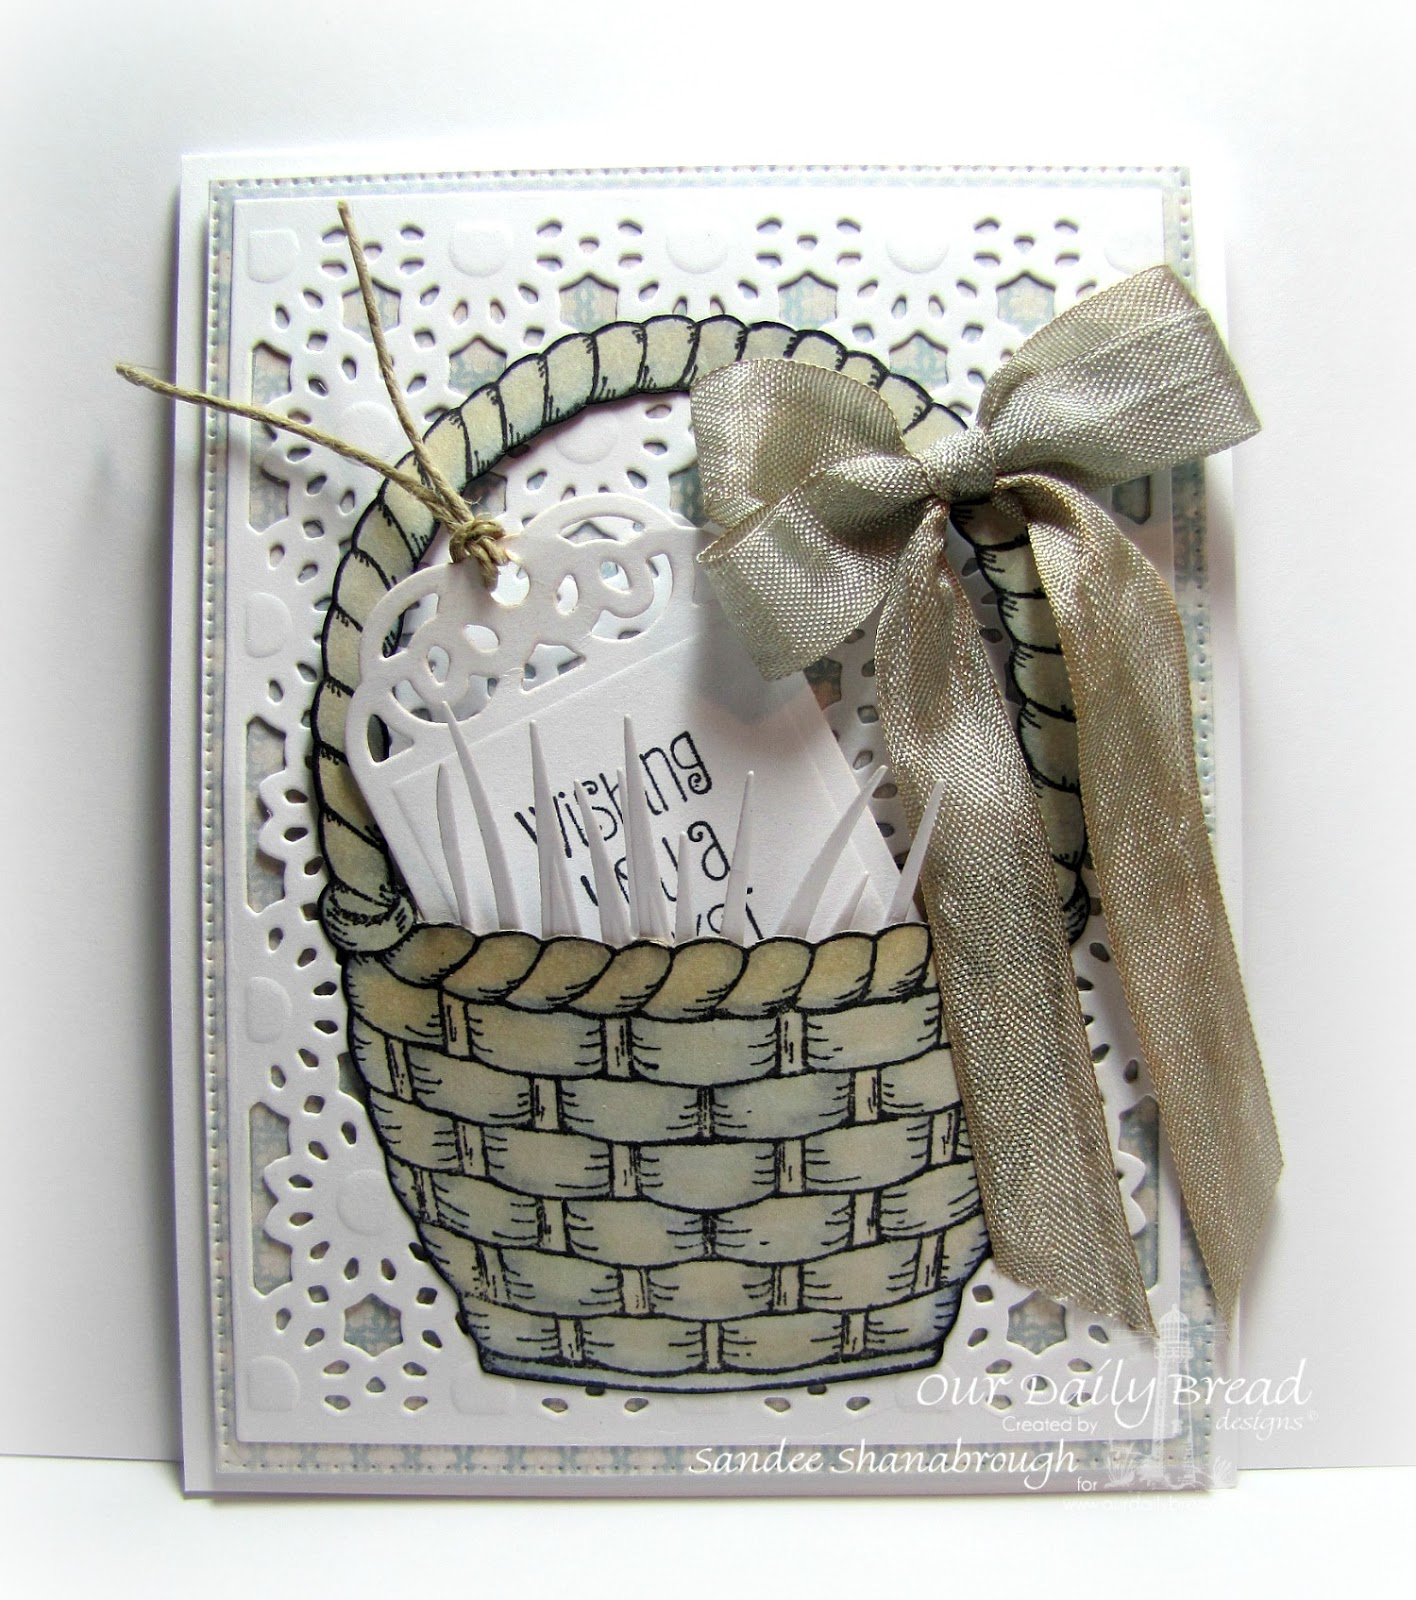 Stamps - Basket of Blessings, ODBD Shabby Rose Paper Collection, ODBD Custom Daisy Chain Background Die, ODBD Custom Recipe Card and Tags Dies, ODBD Custom Grass Border Die